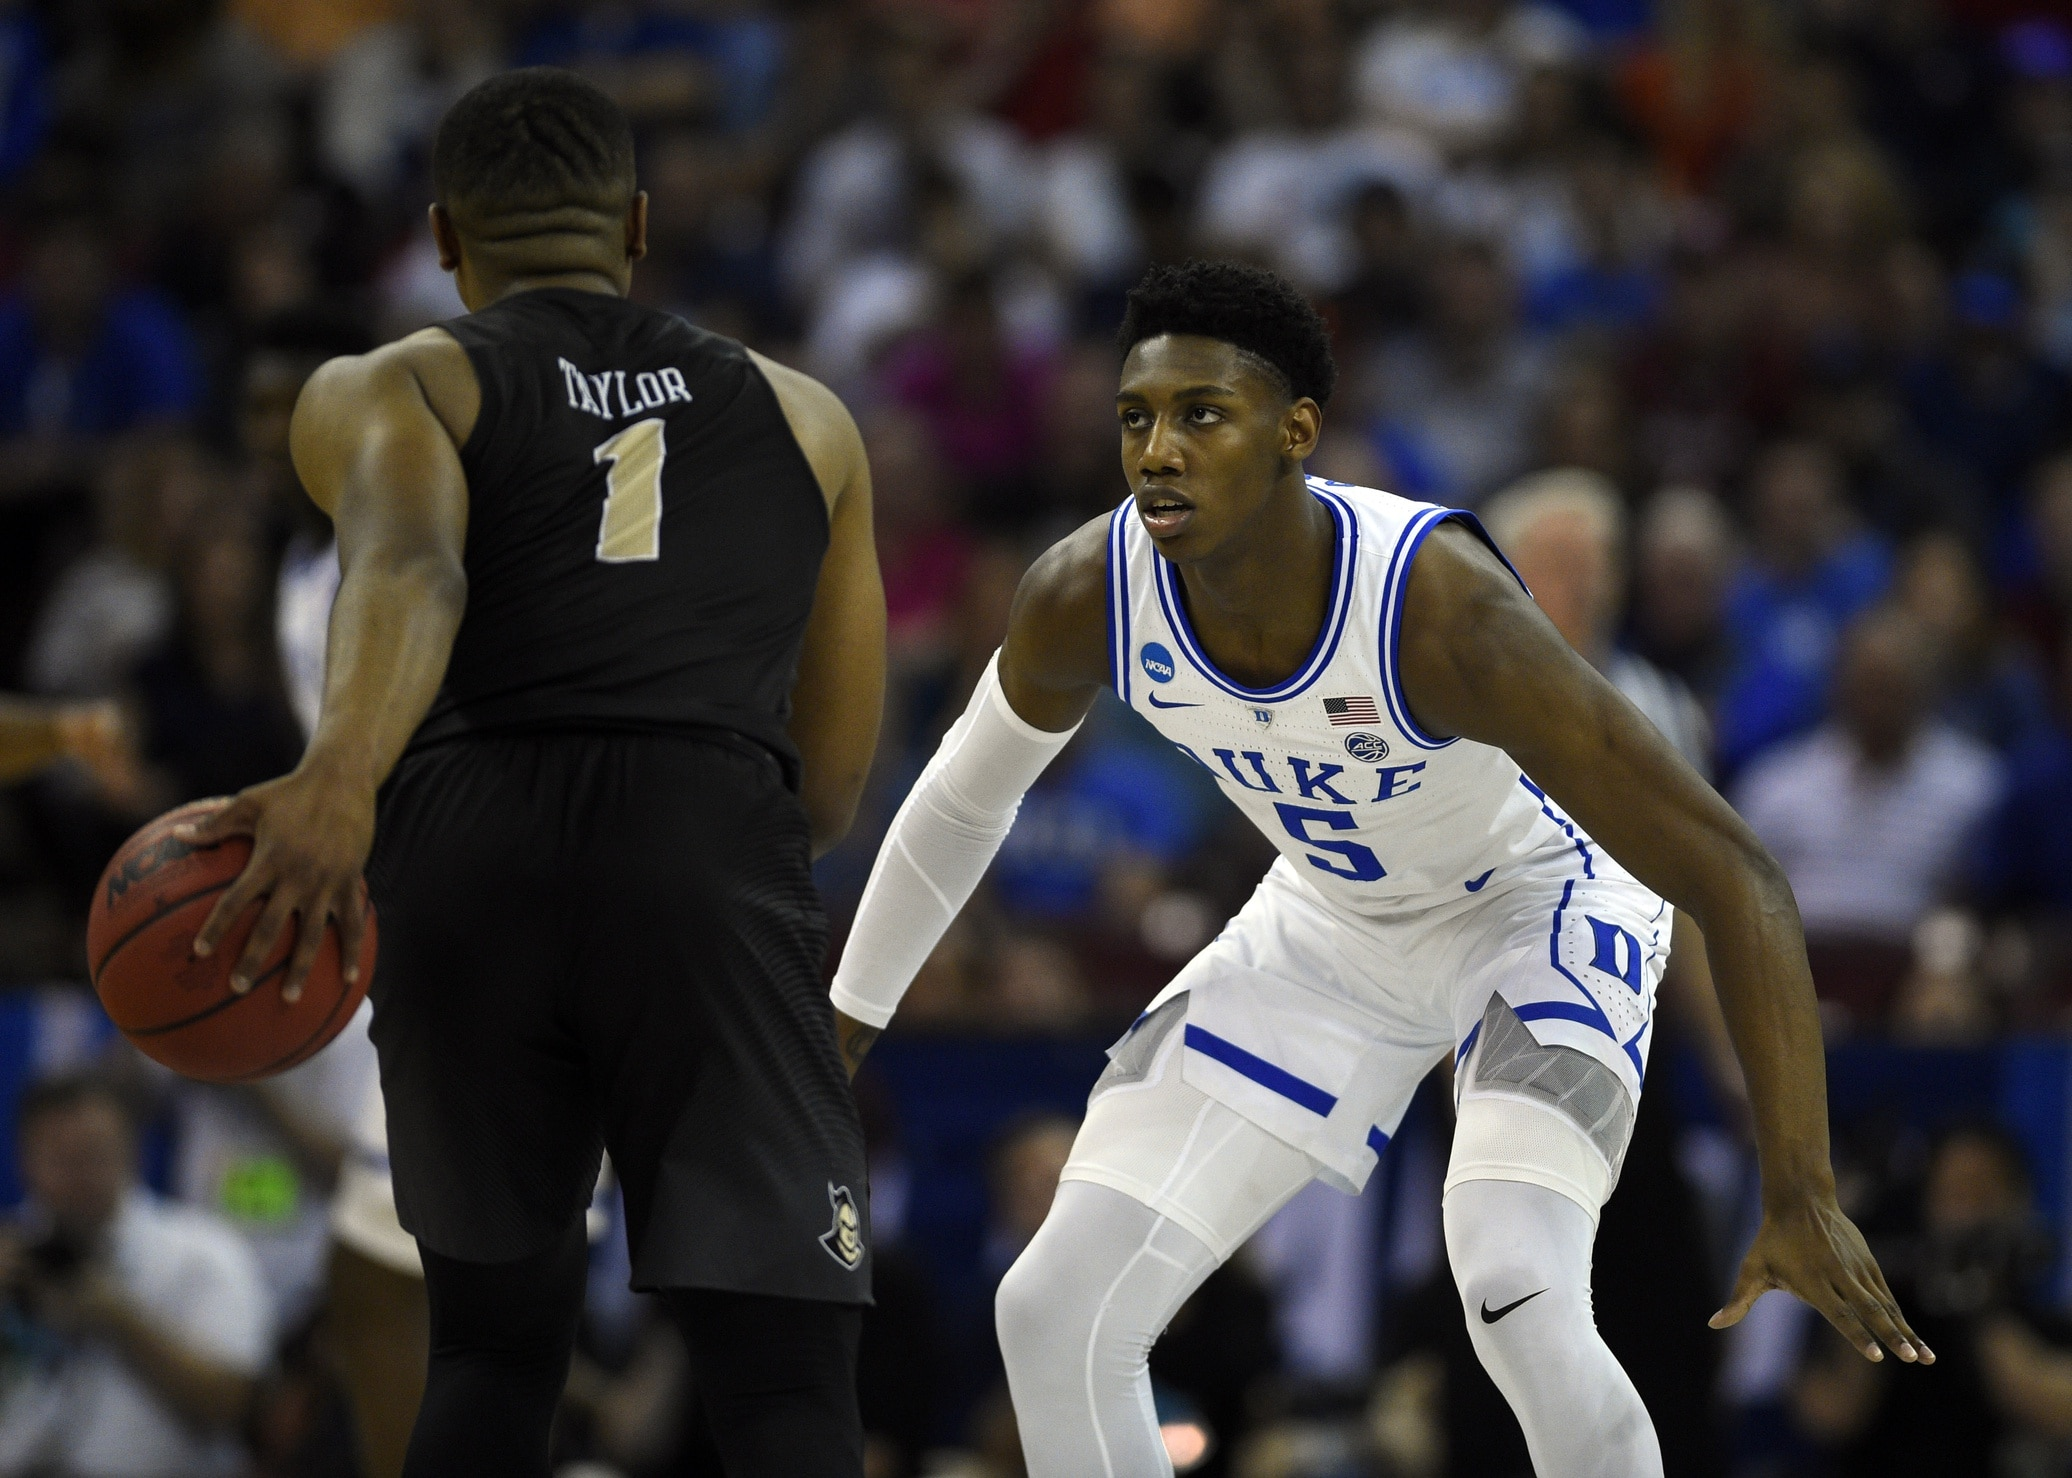 313d22efdcc UCF s battle against Duke means the Knights will linger — even after defeat